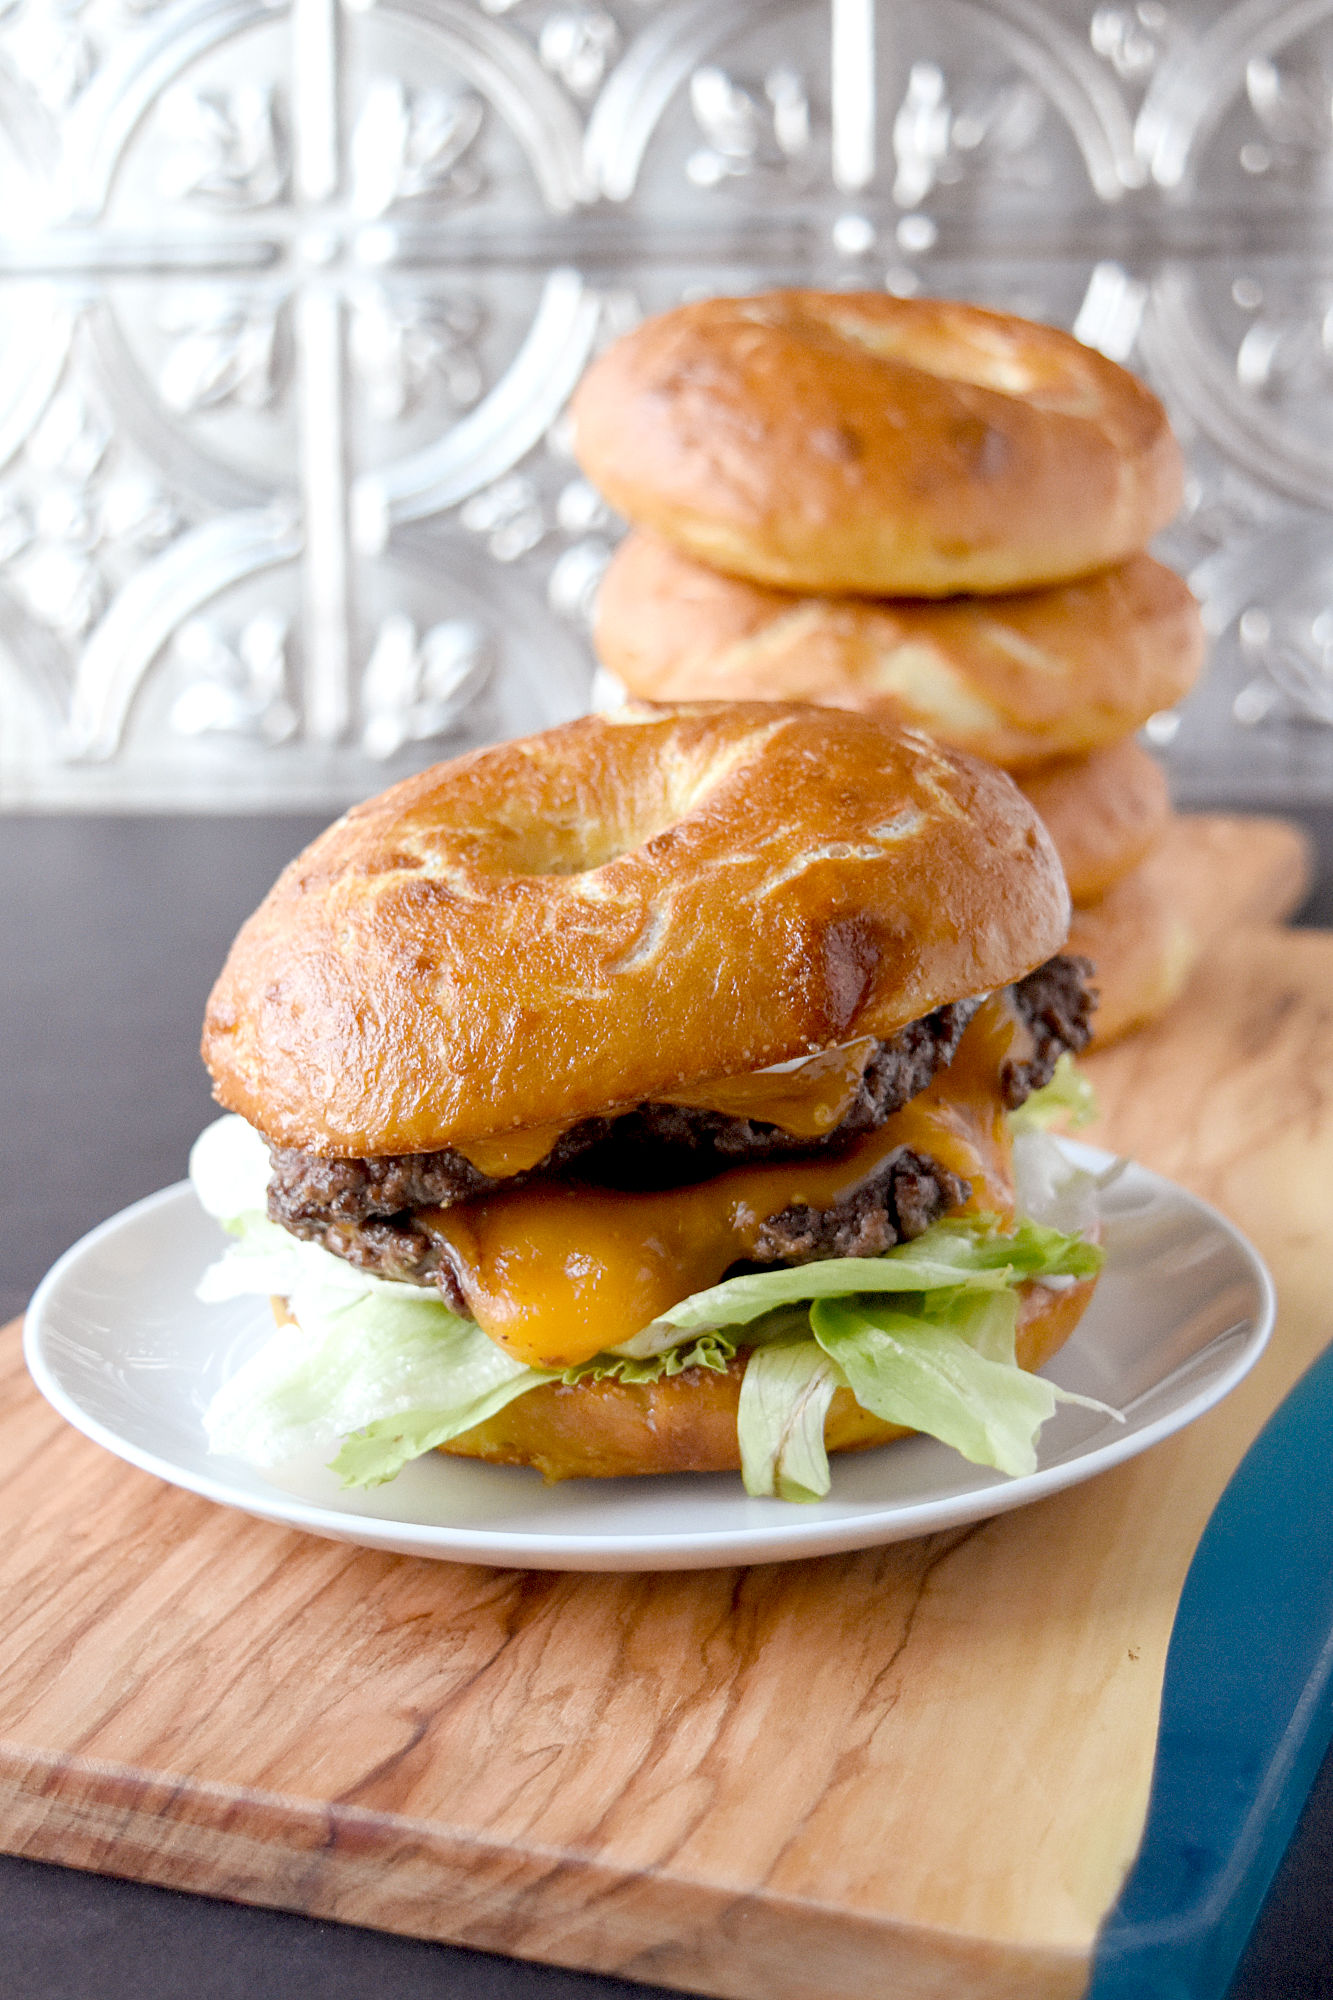 Bagel Buns are deliciously simple to make for any backward grilling party. They stand up to the any burger and taste delicious. #OurFamilyTable